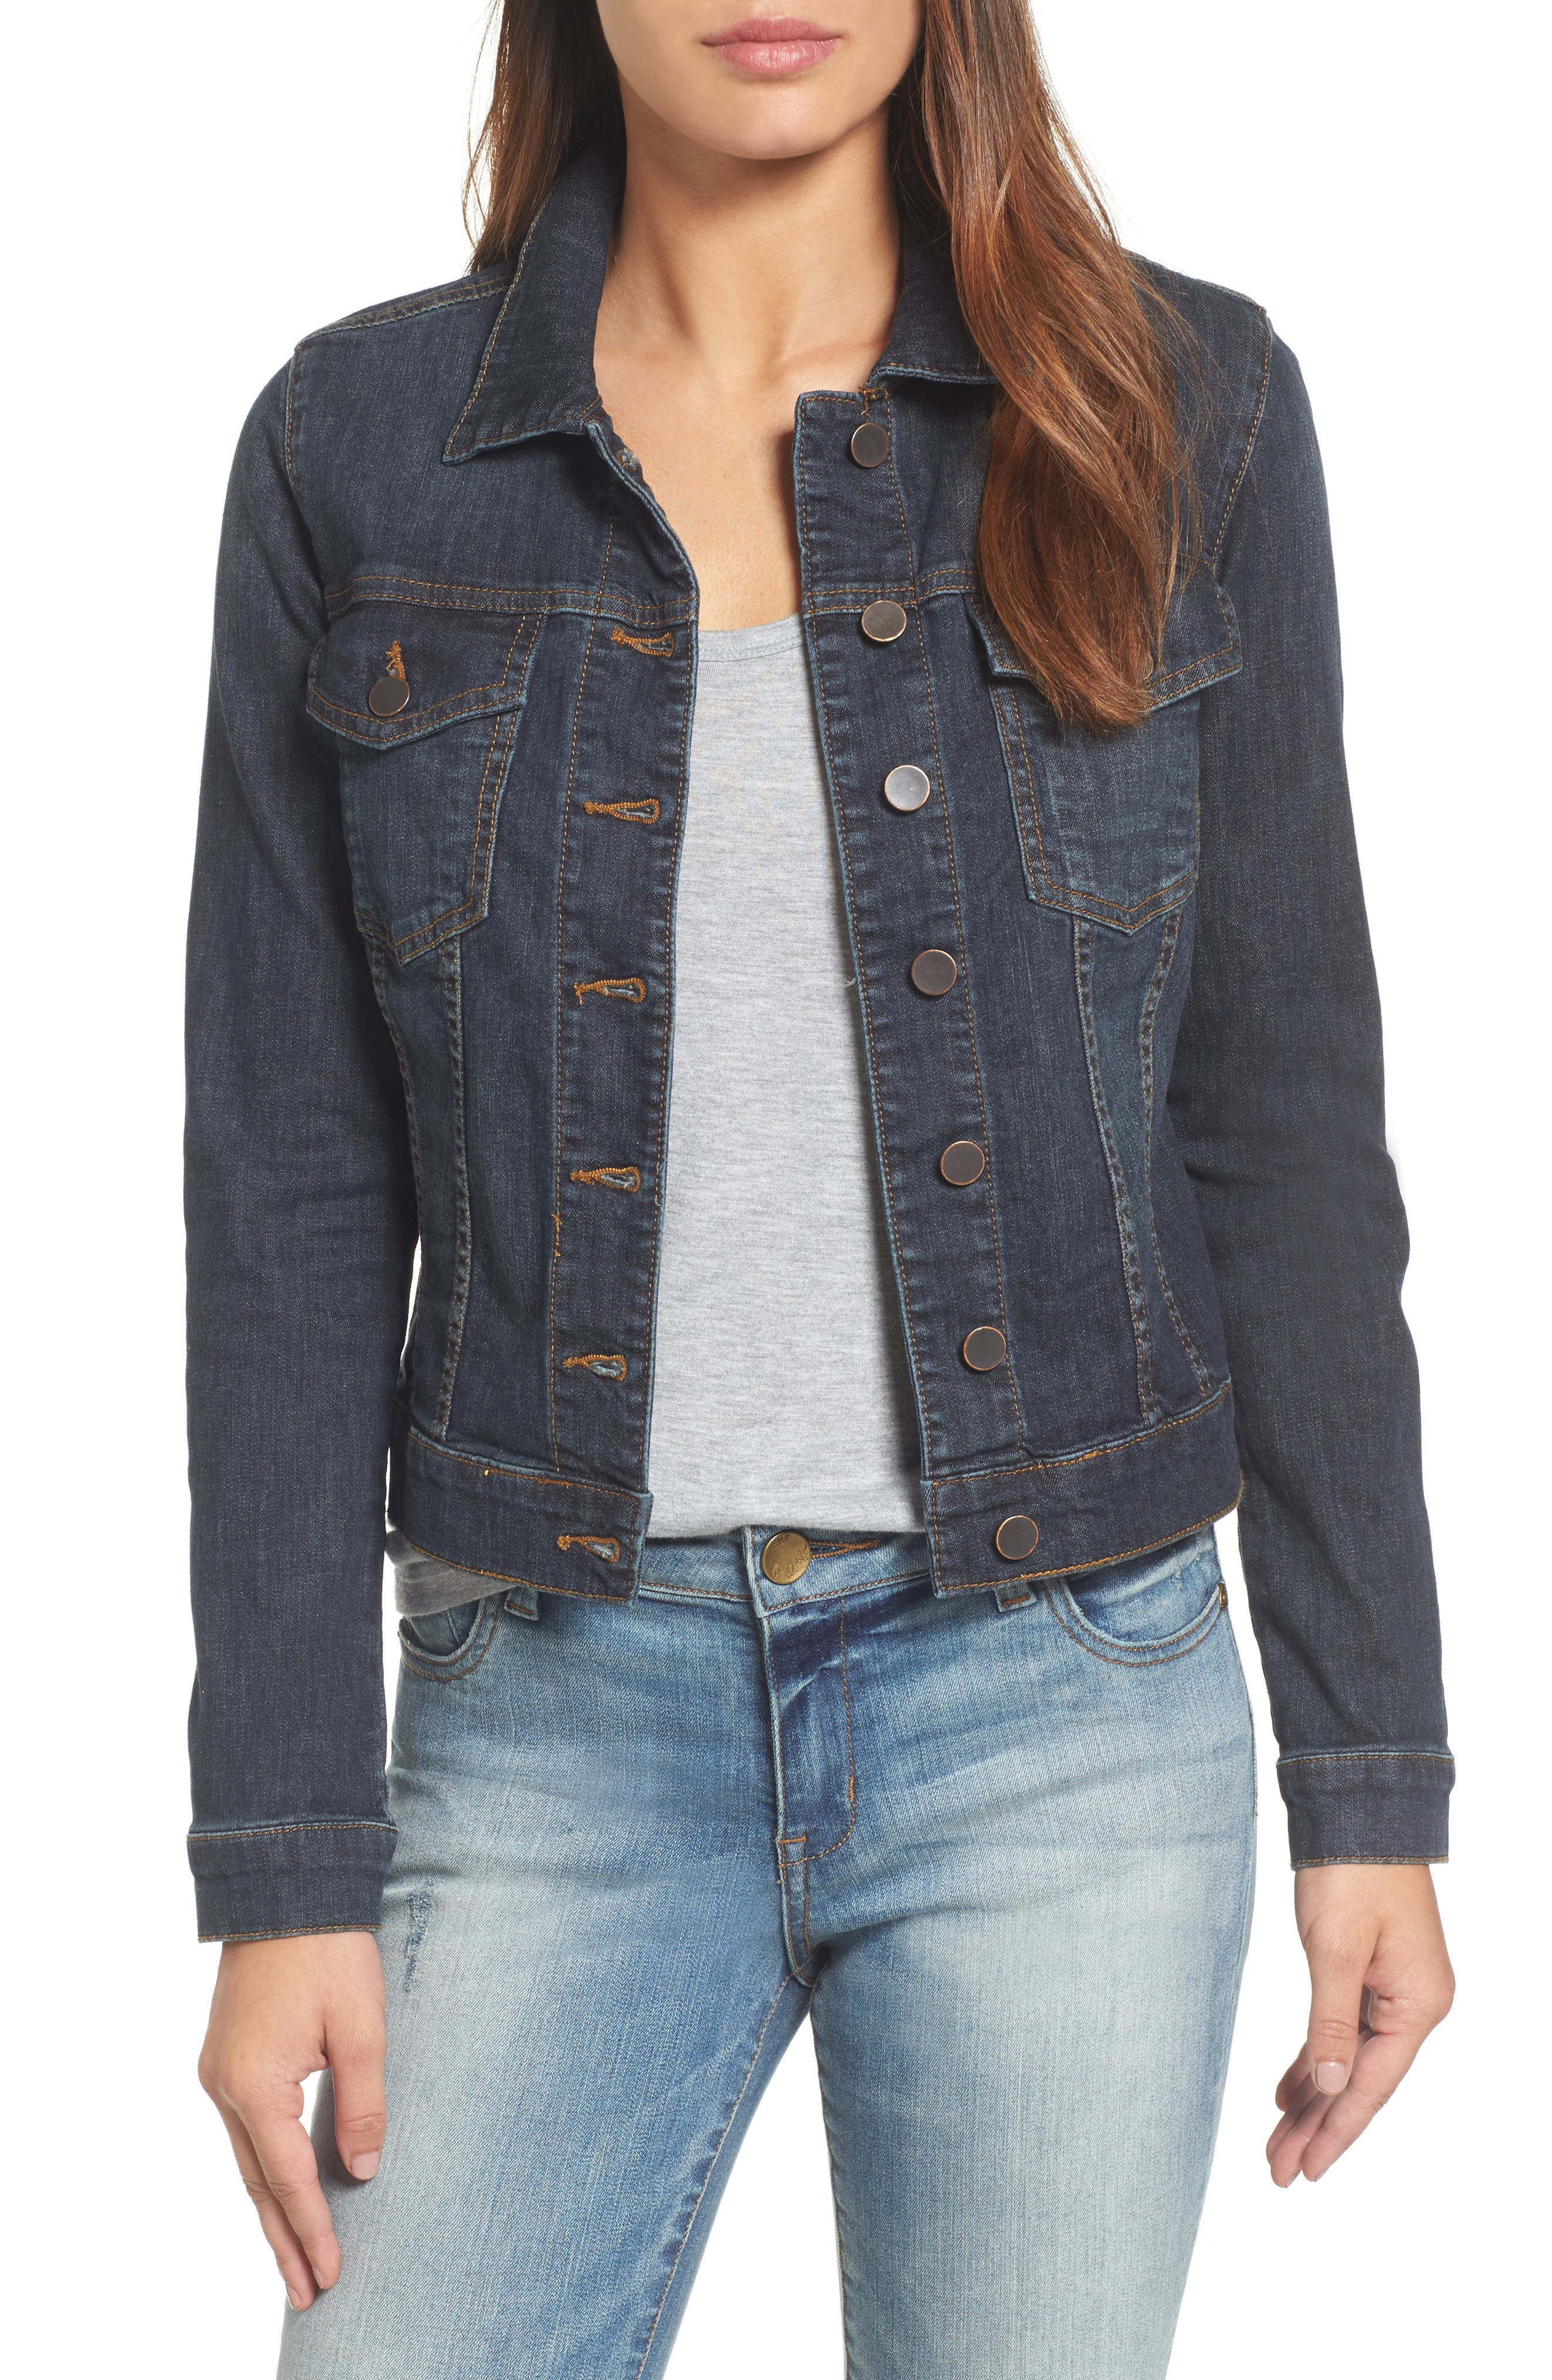 KUT FROM THE KLOTH, 'Helena' Denim Jacket, Main thumbnail 1, color, GRATITUDE